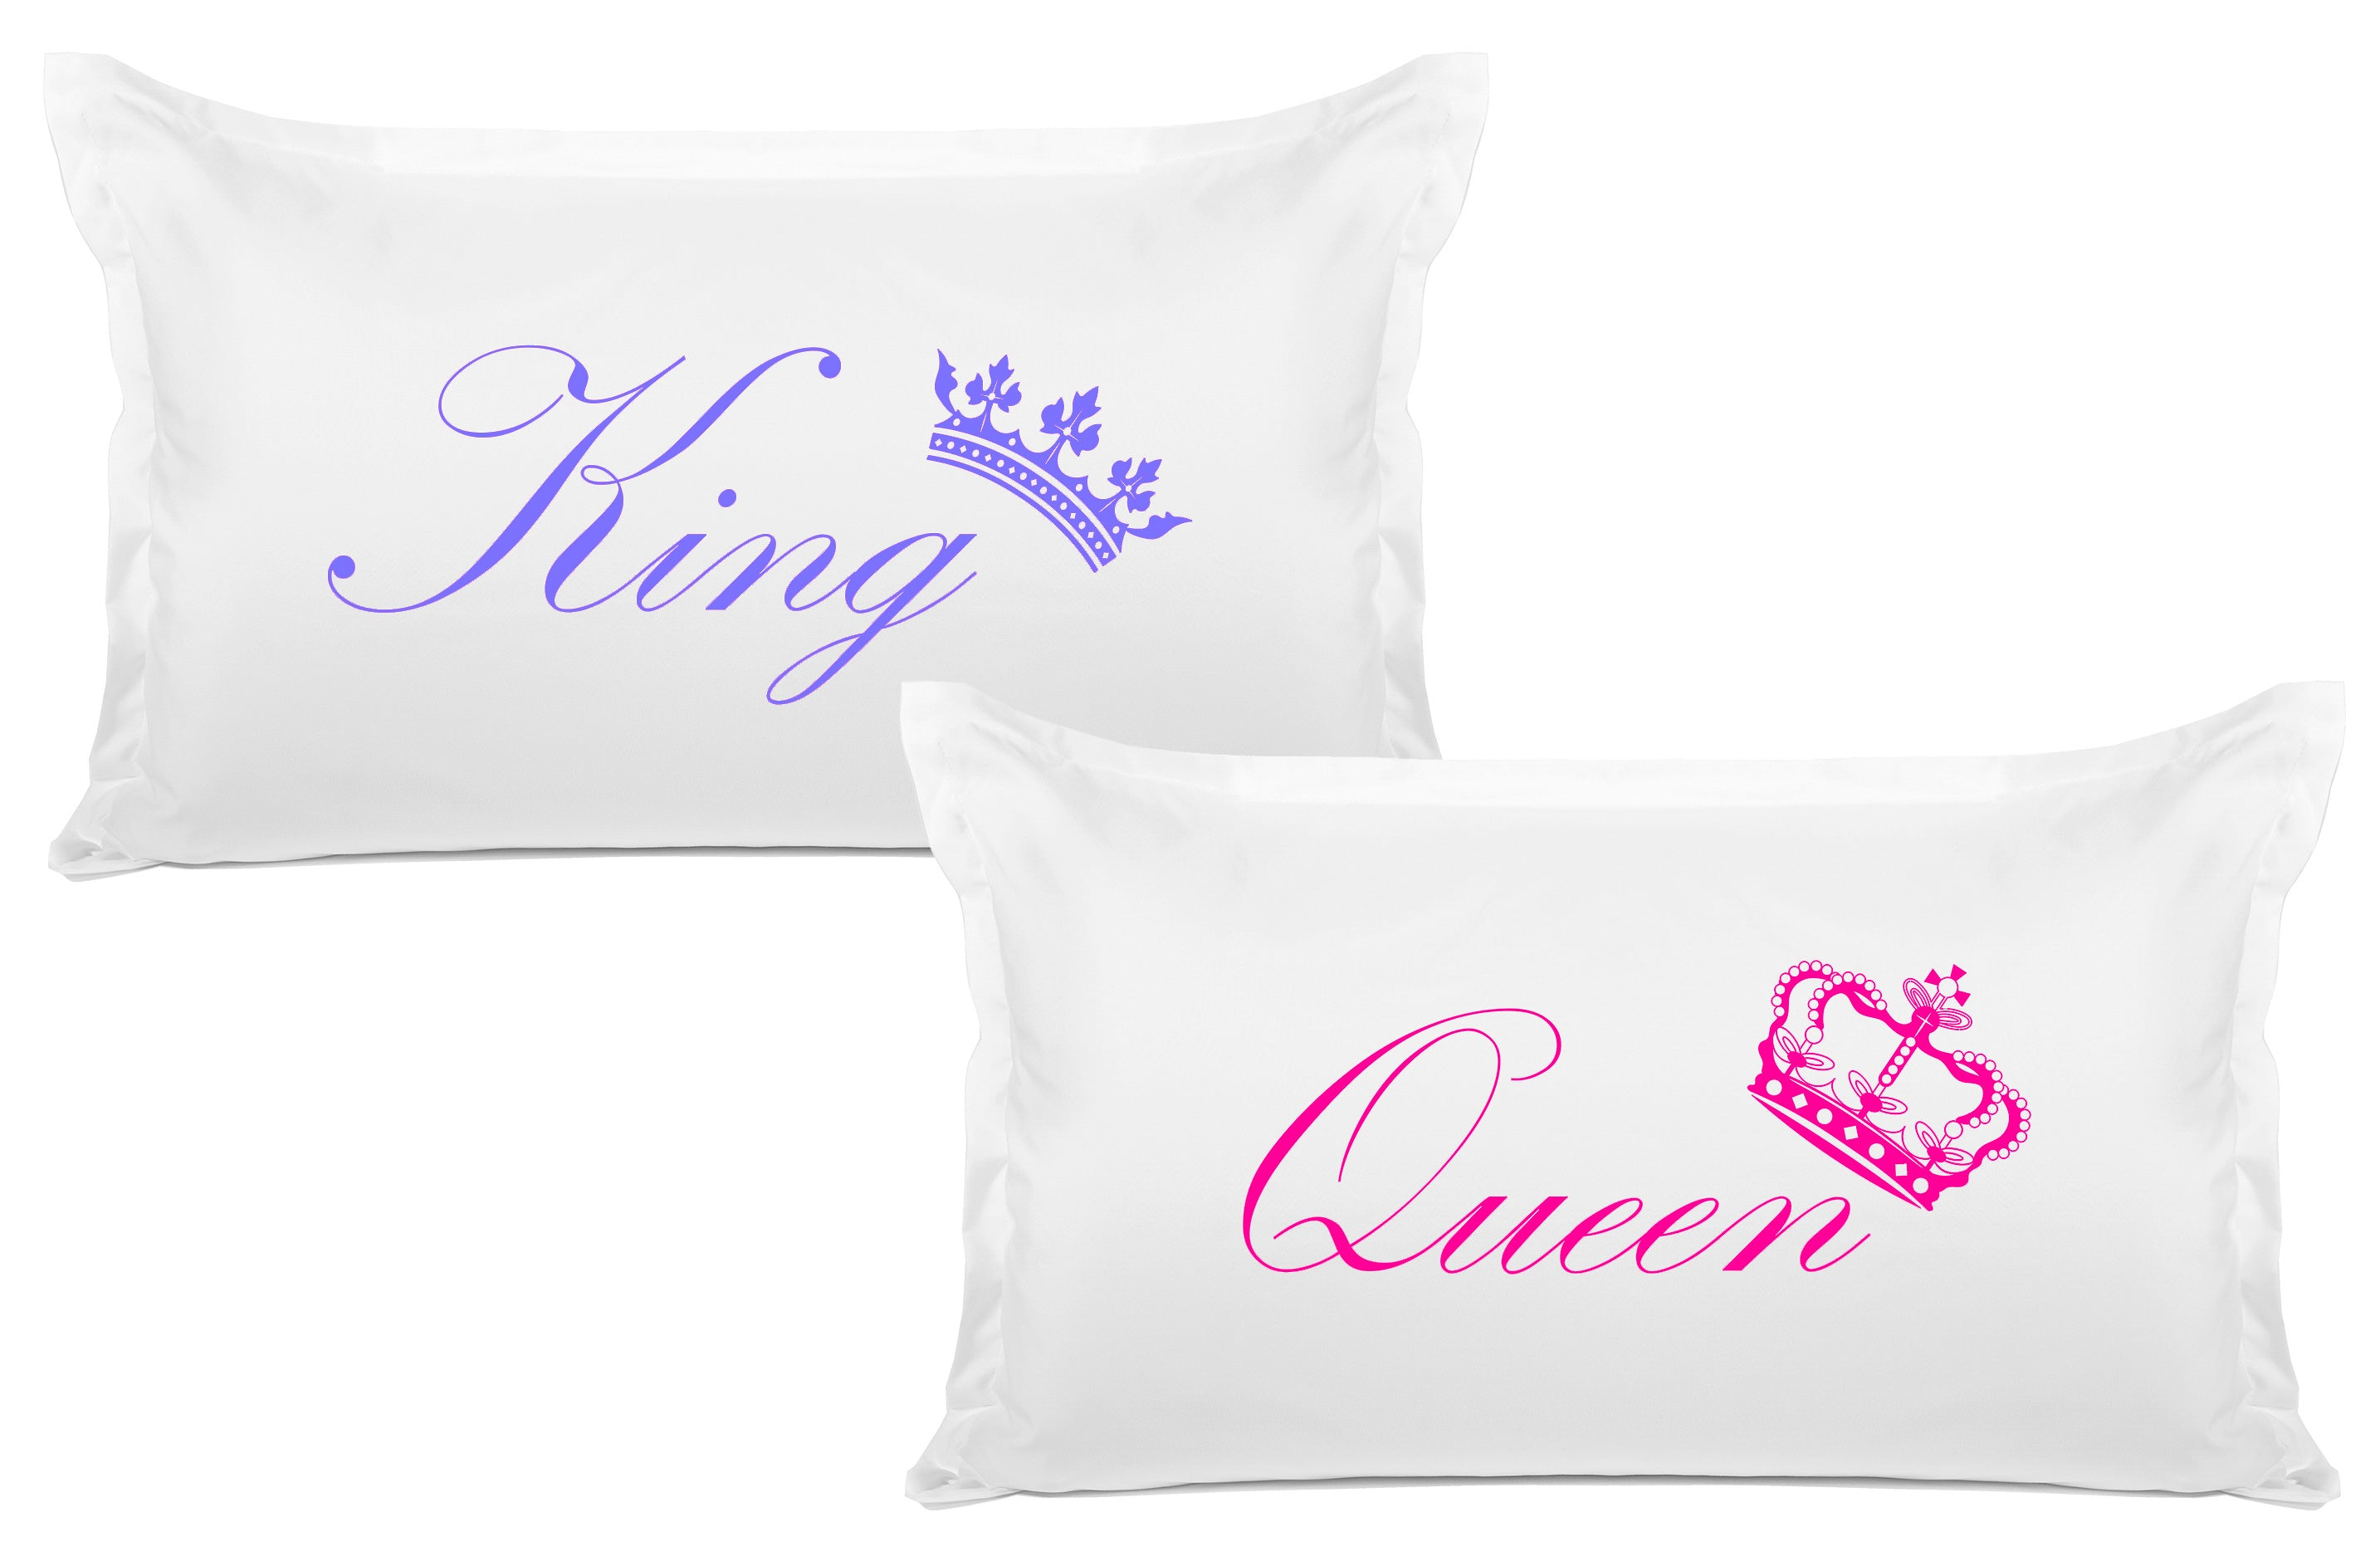 King Crown, Queen Crown - His & Hers Pillowcase Collection